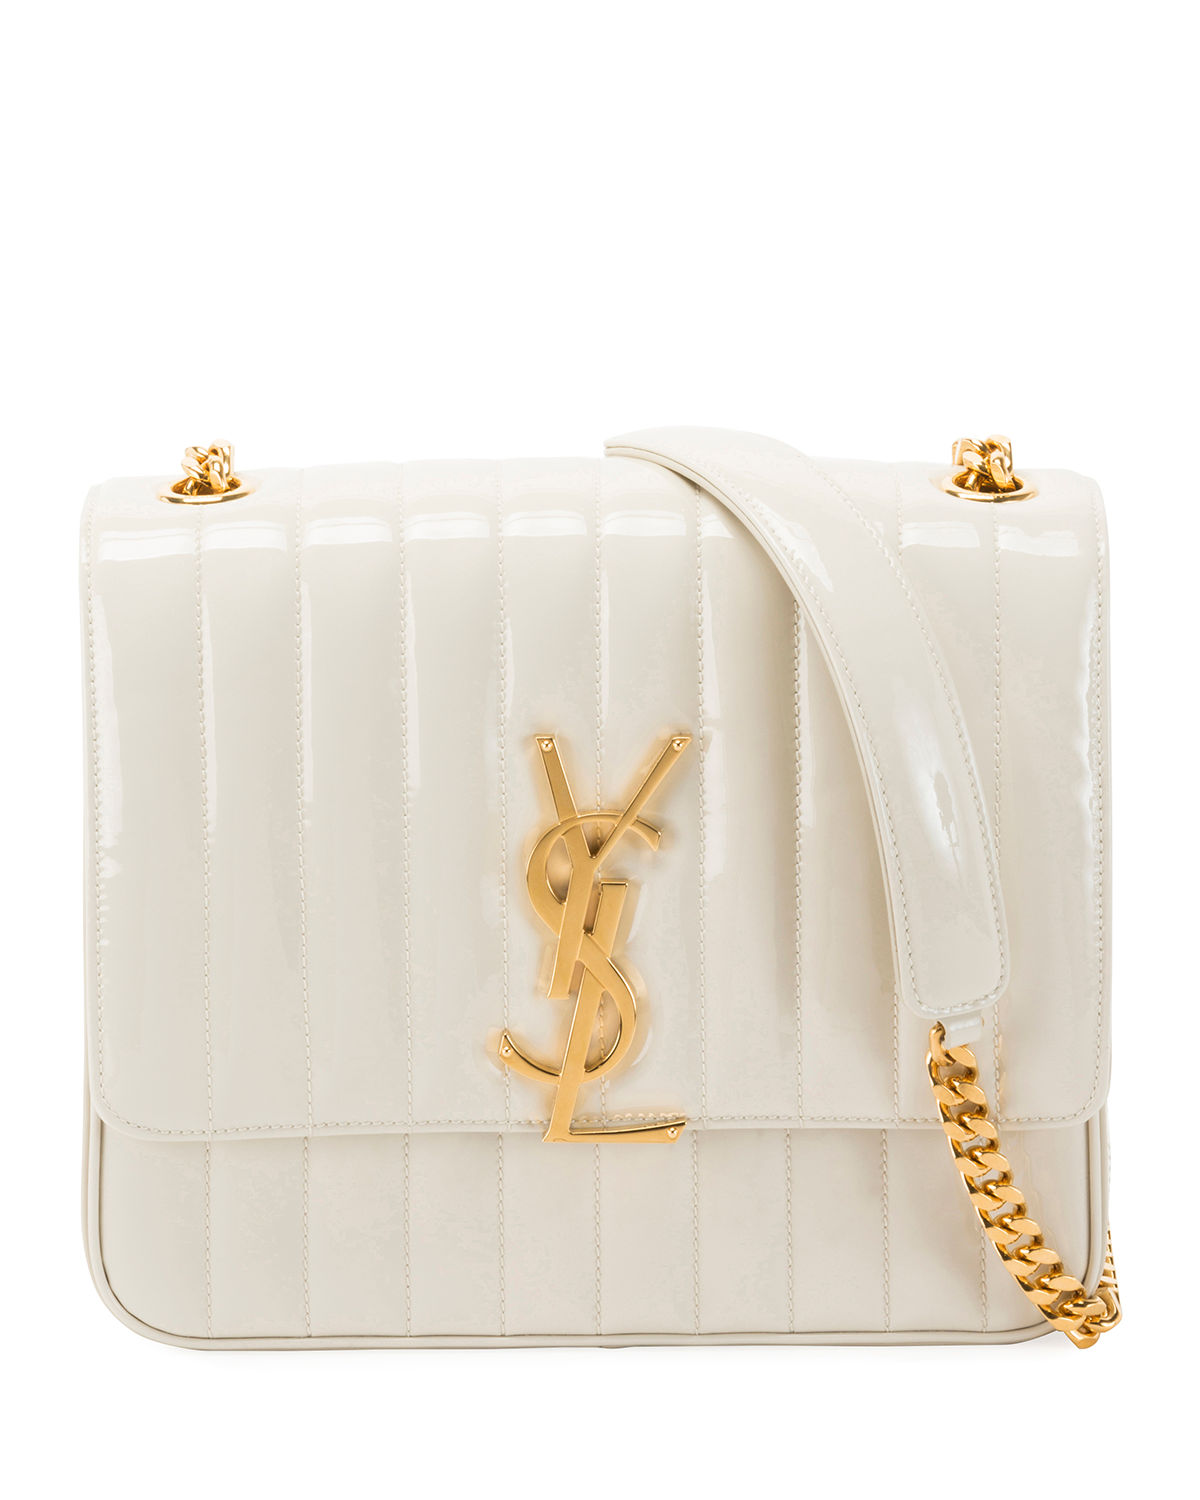 Saint Laurent Vicky Monogram Ysl Large Quilted Patent Chain Crossbody Bag  In White cdd59254ccaba